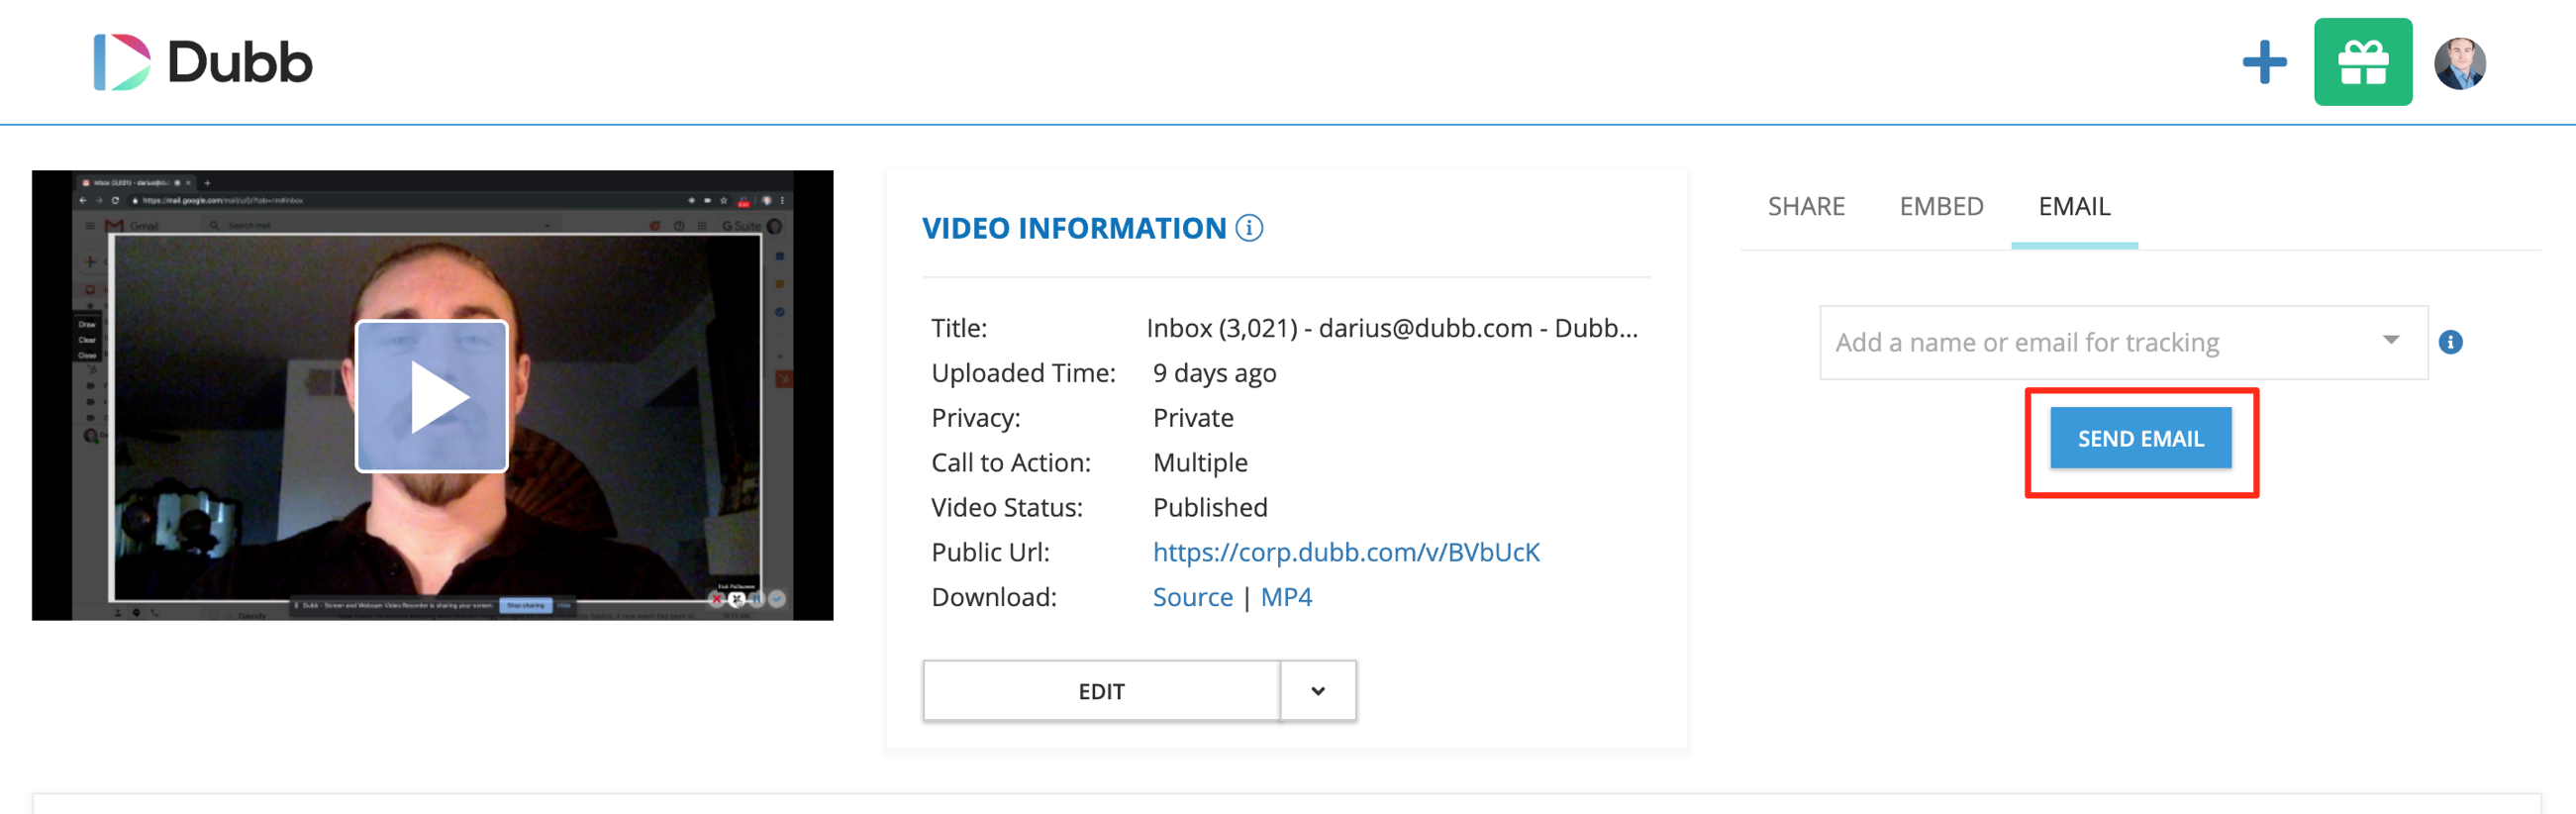 video page email sender